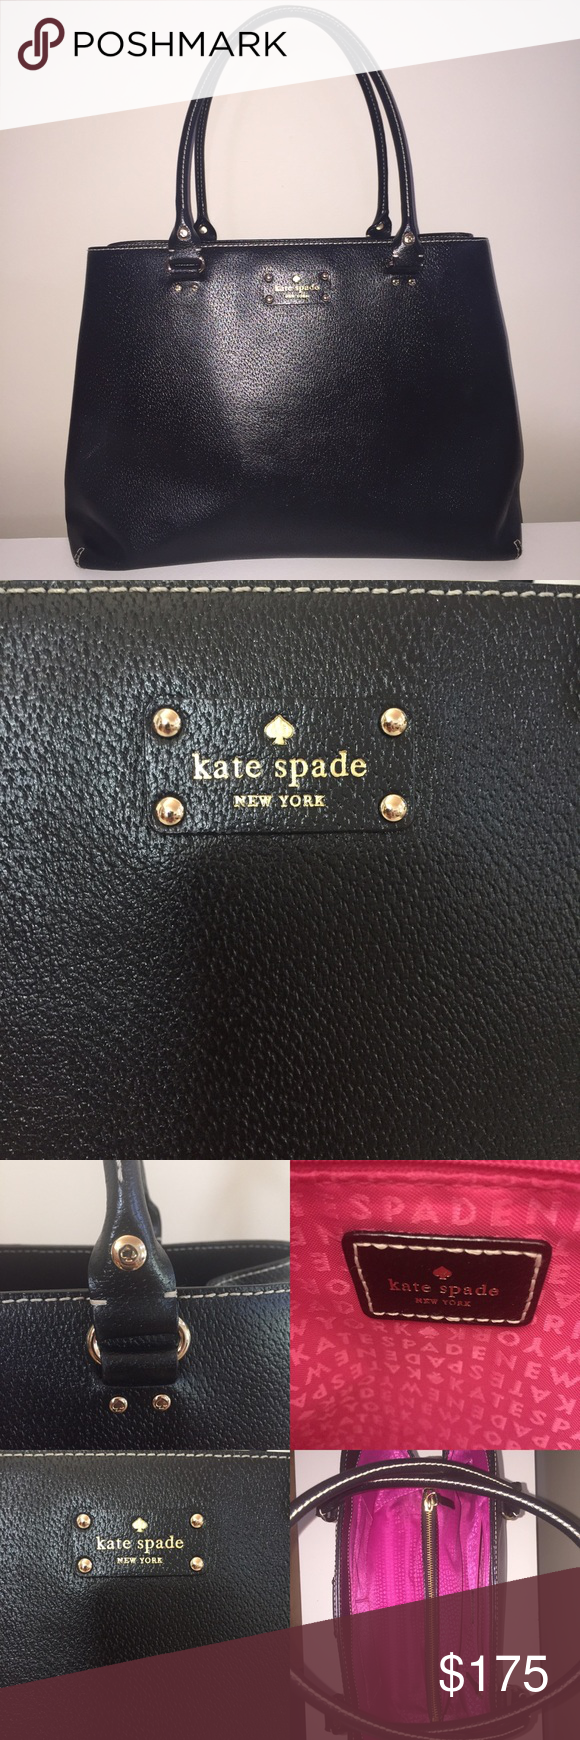 Kate Spade briefcase Clean lines and smart details make this Kate ...